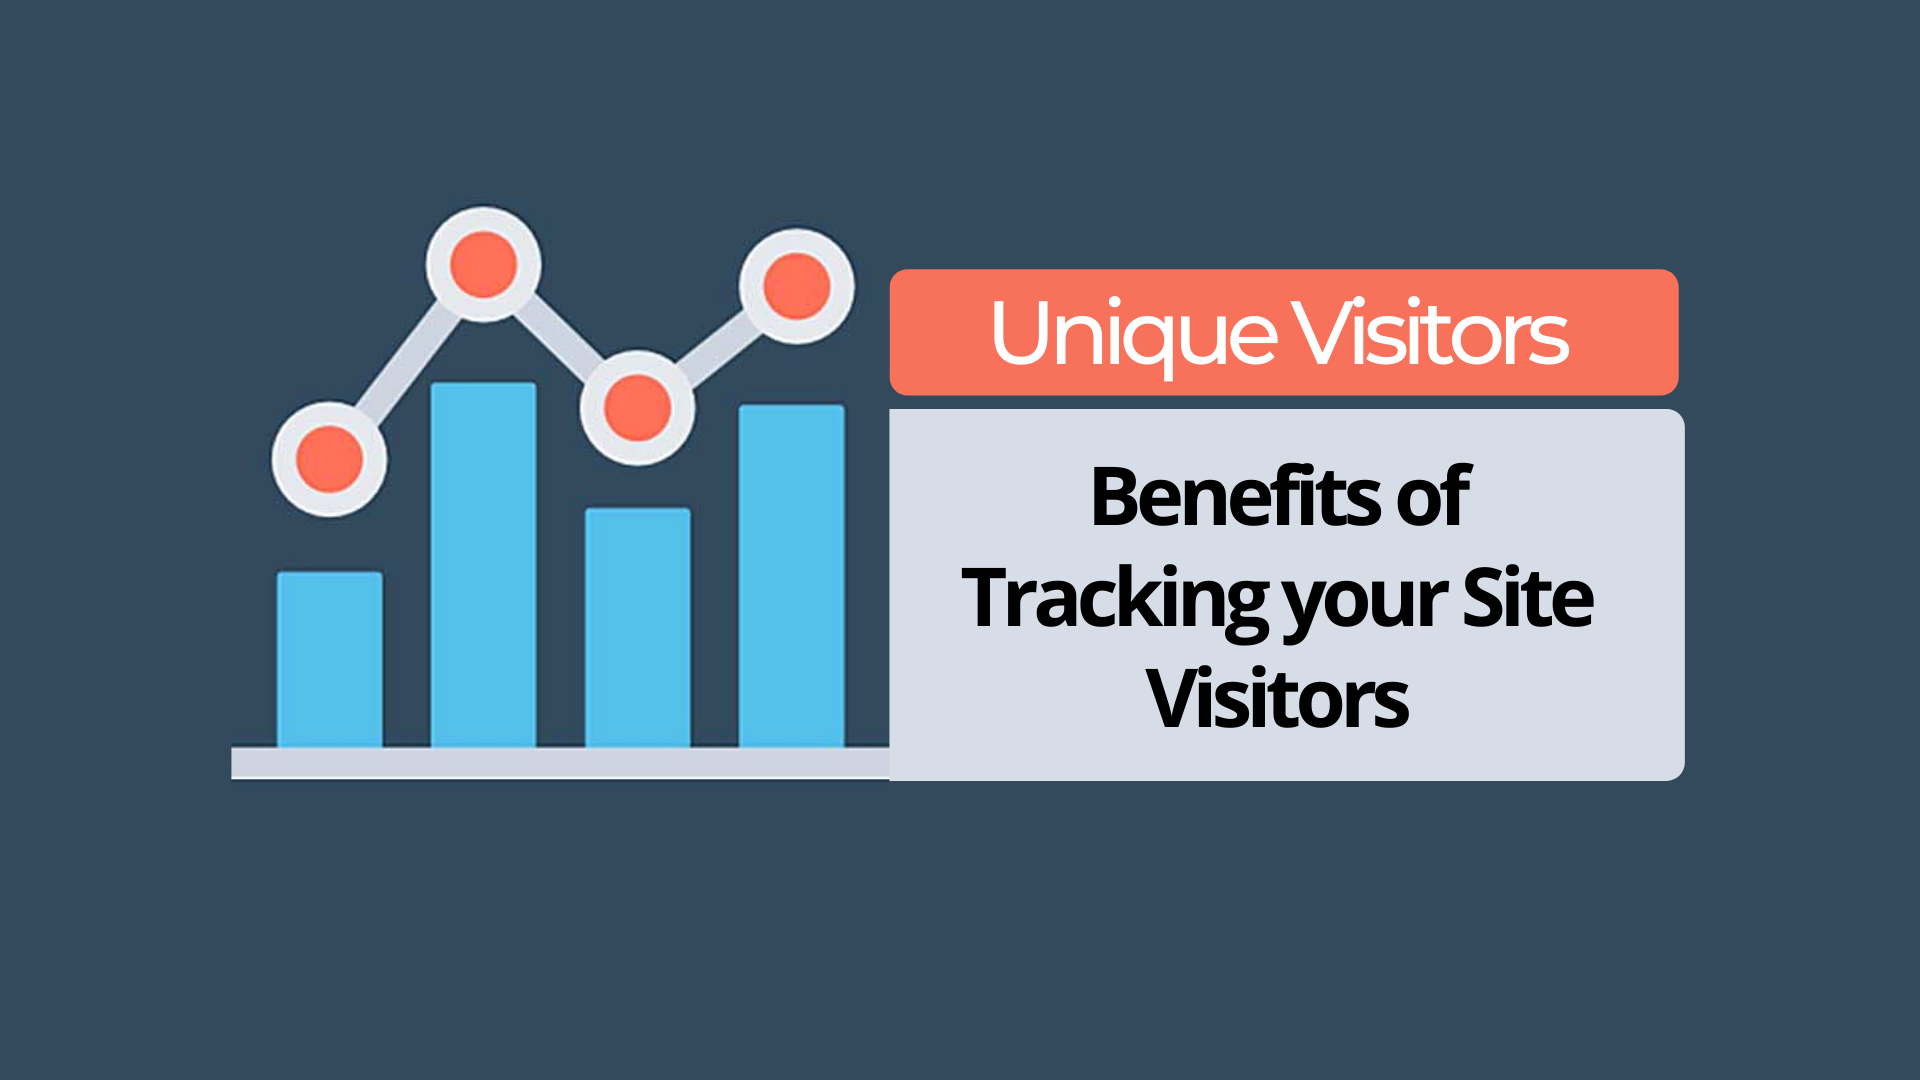 Why do Unique Visitors matter?